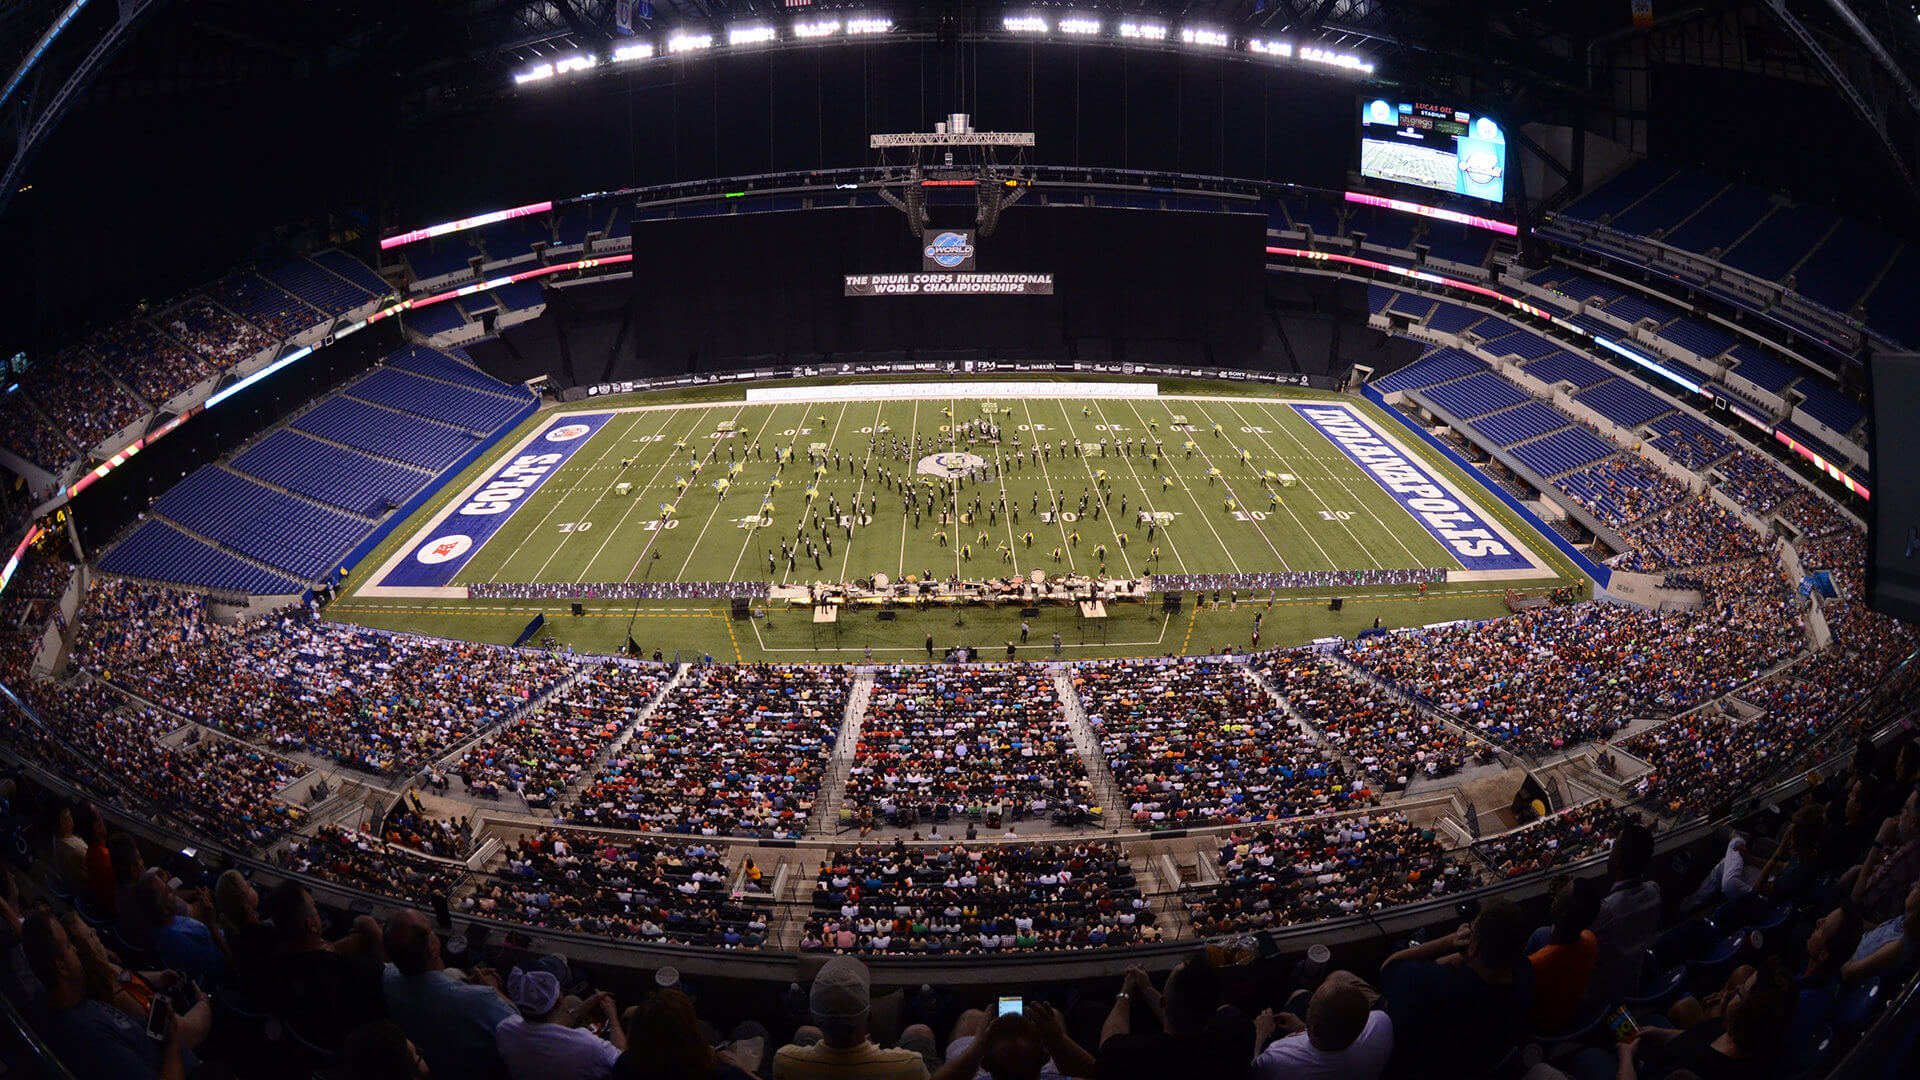 Attendance records set across 2015 Drum Corps International Tour